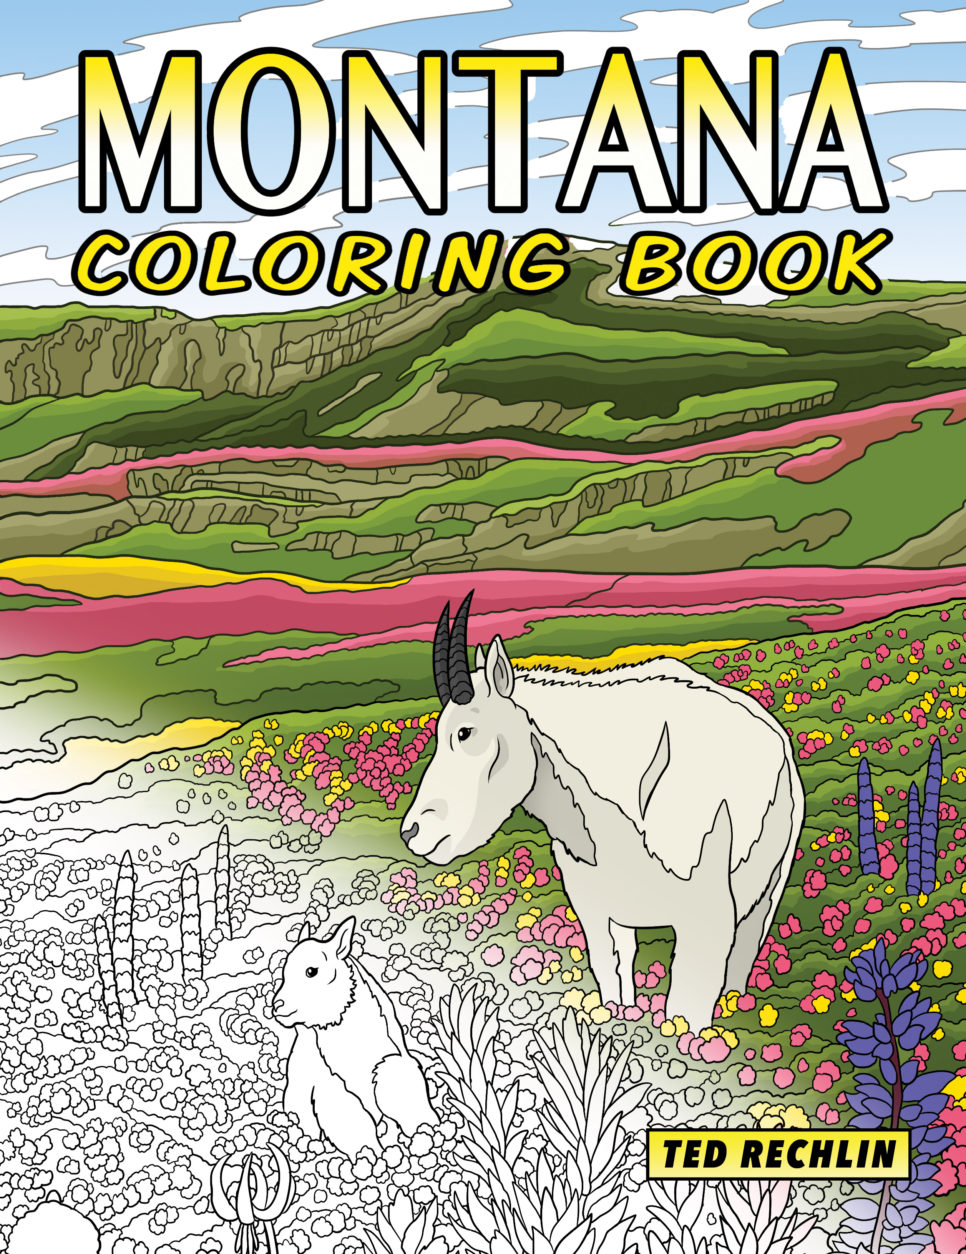 Montana Coloring Book Cover - Mountain Goats at Glacier National Park